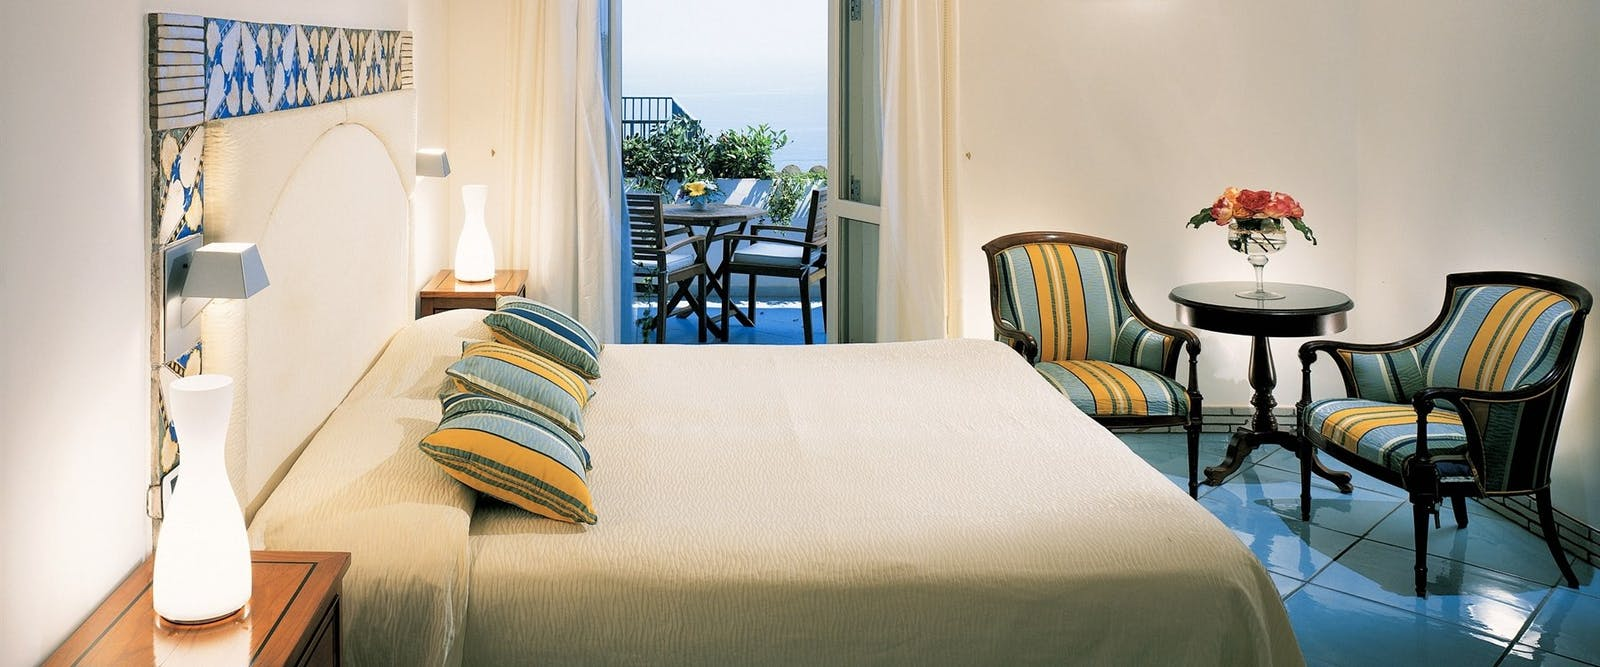 Superior Double Room at Hotel Santa Caterina, Amalfi Coast, Italy